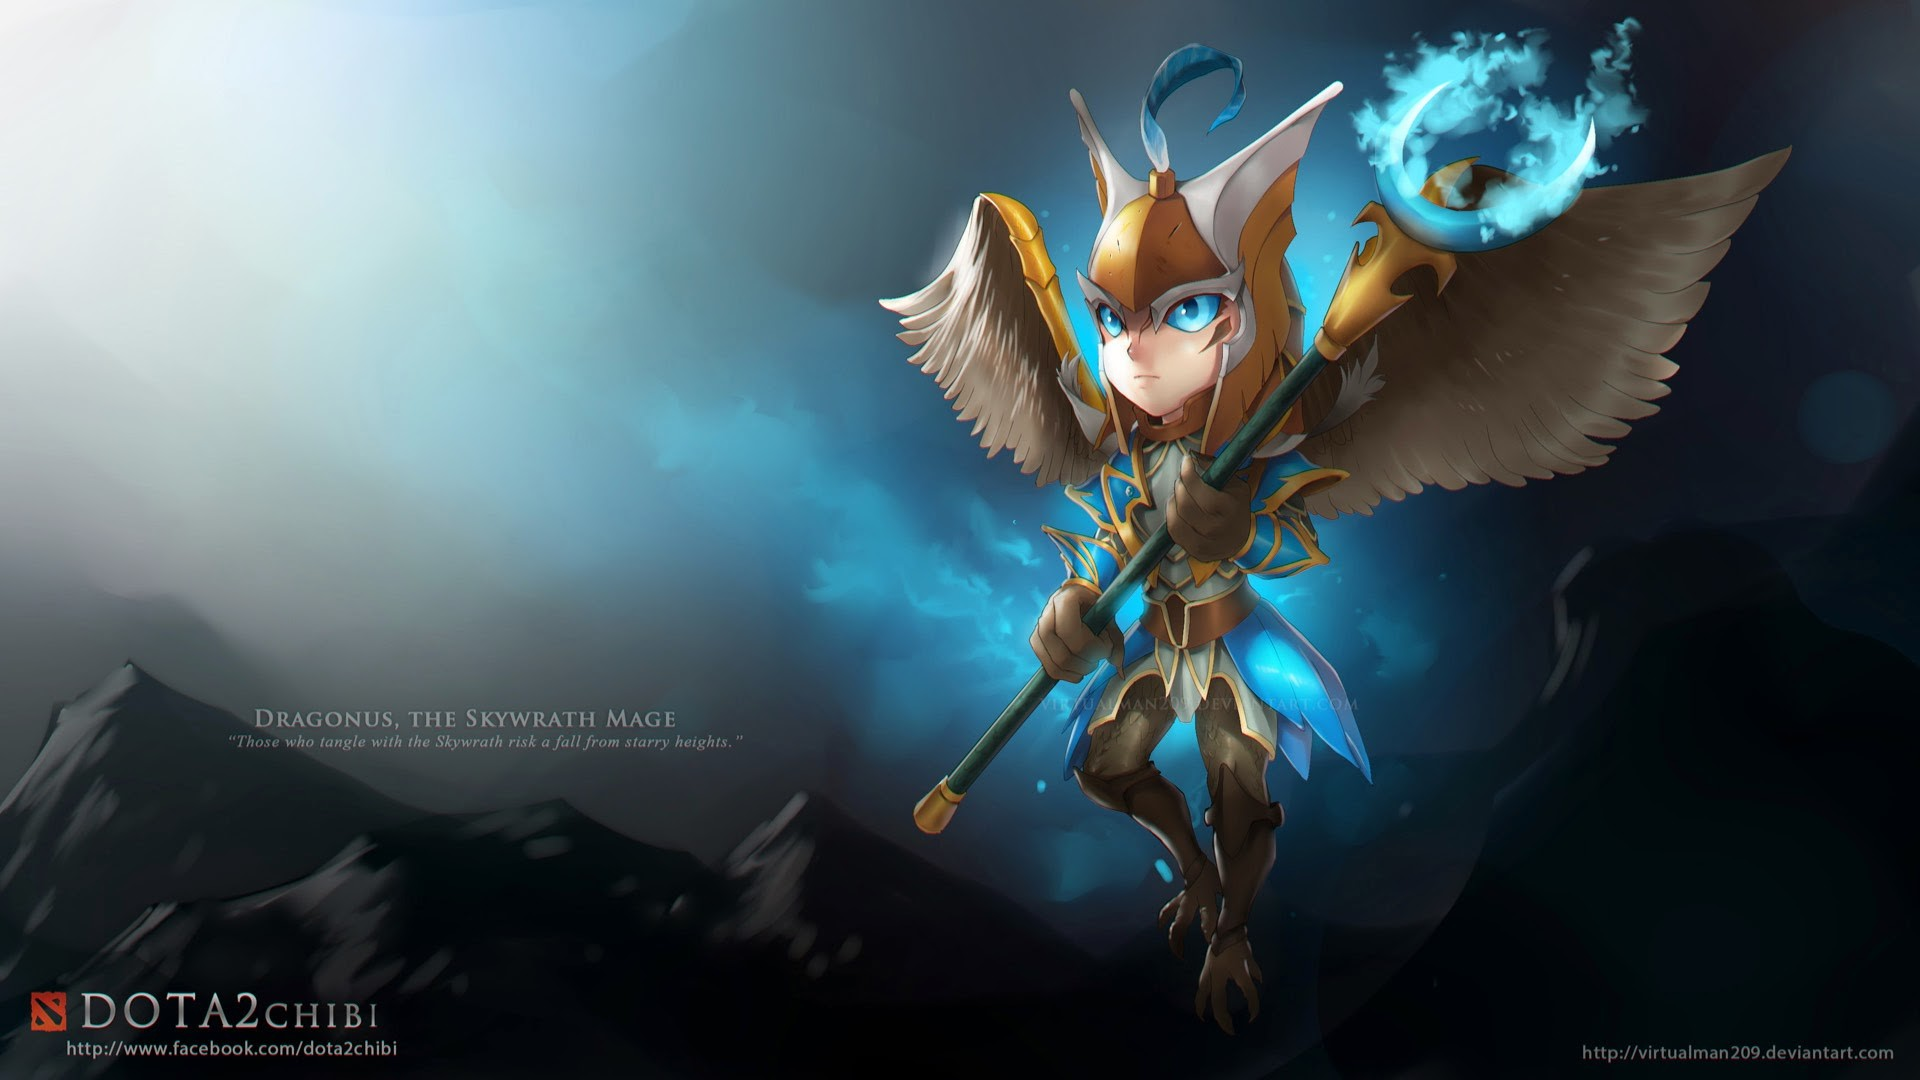 Dota 2 Heroes Wallpaper Awesome Luxury Elegant Best Of Beautiful  Fresh Inspirational Lovely Unique New